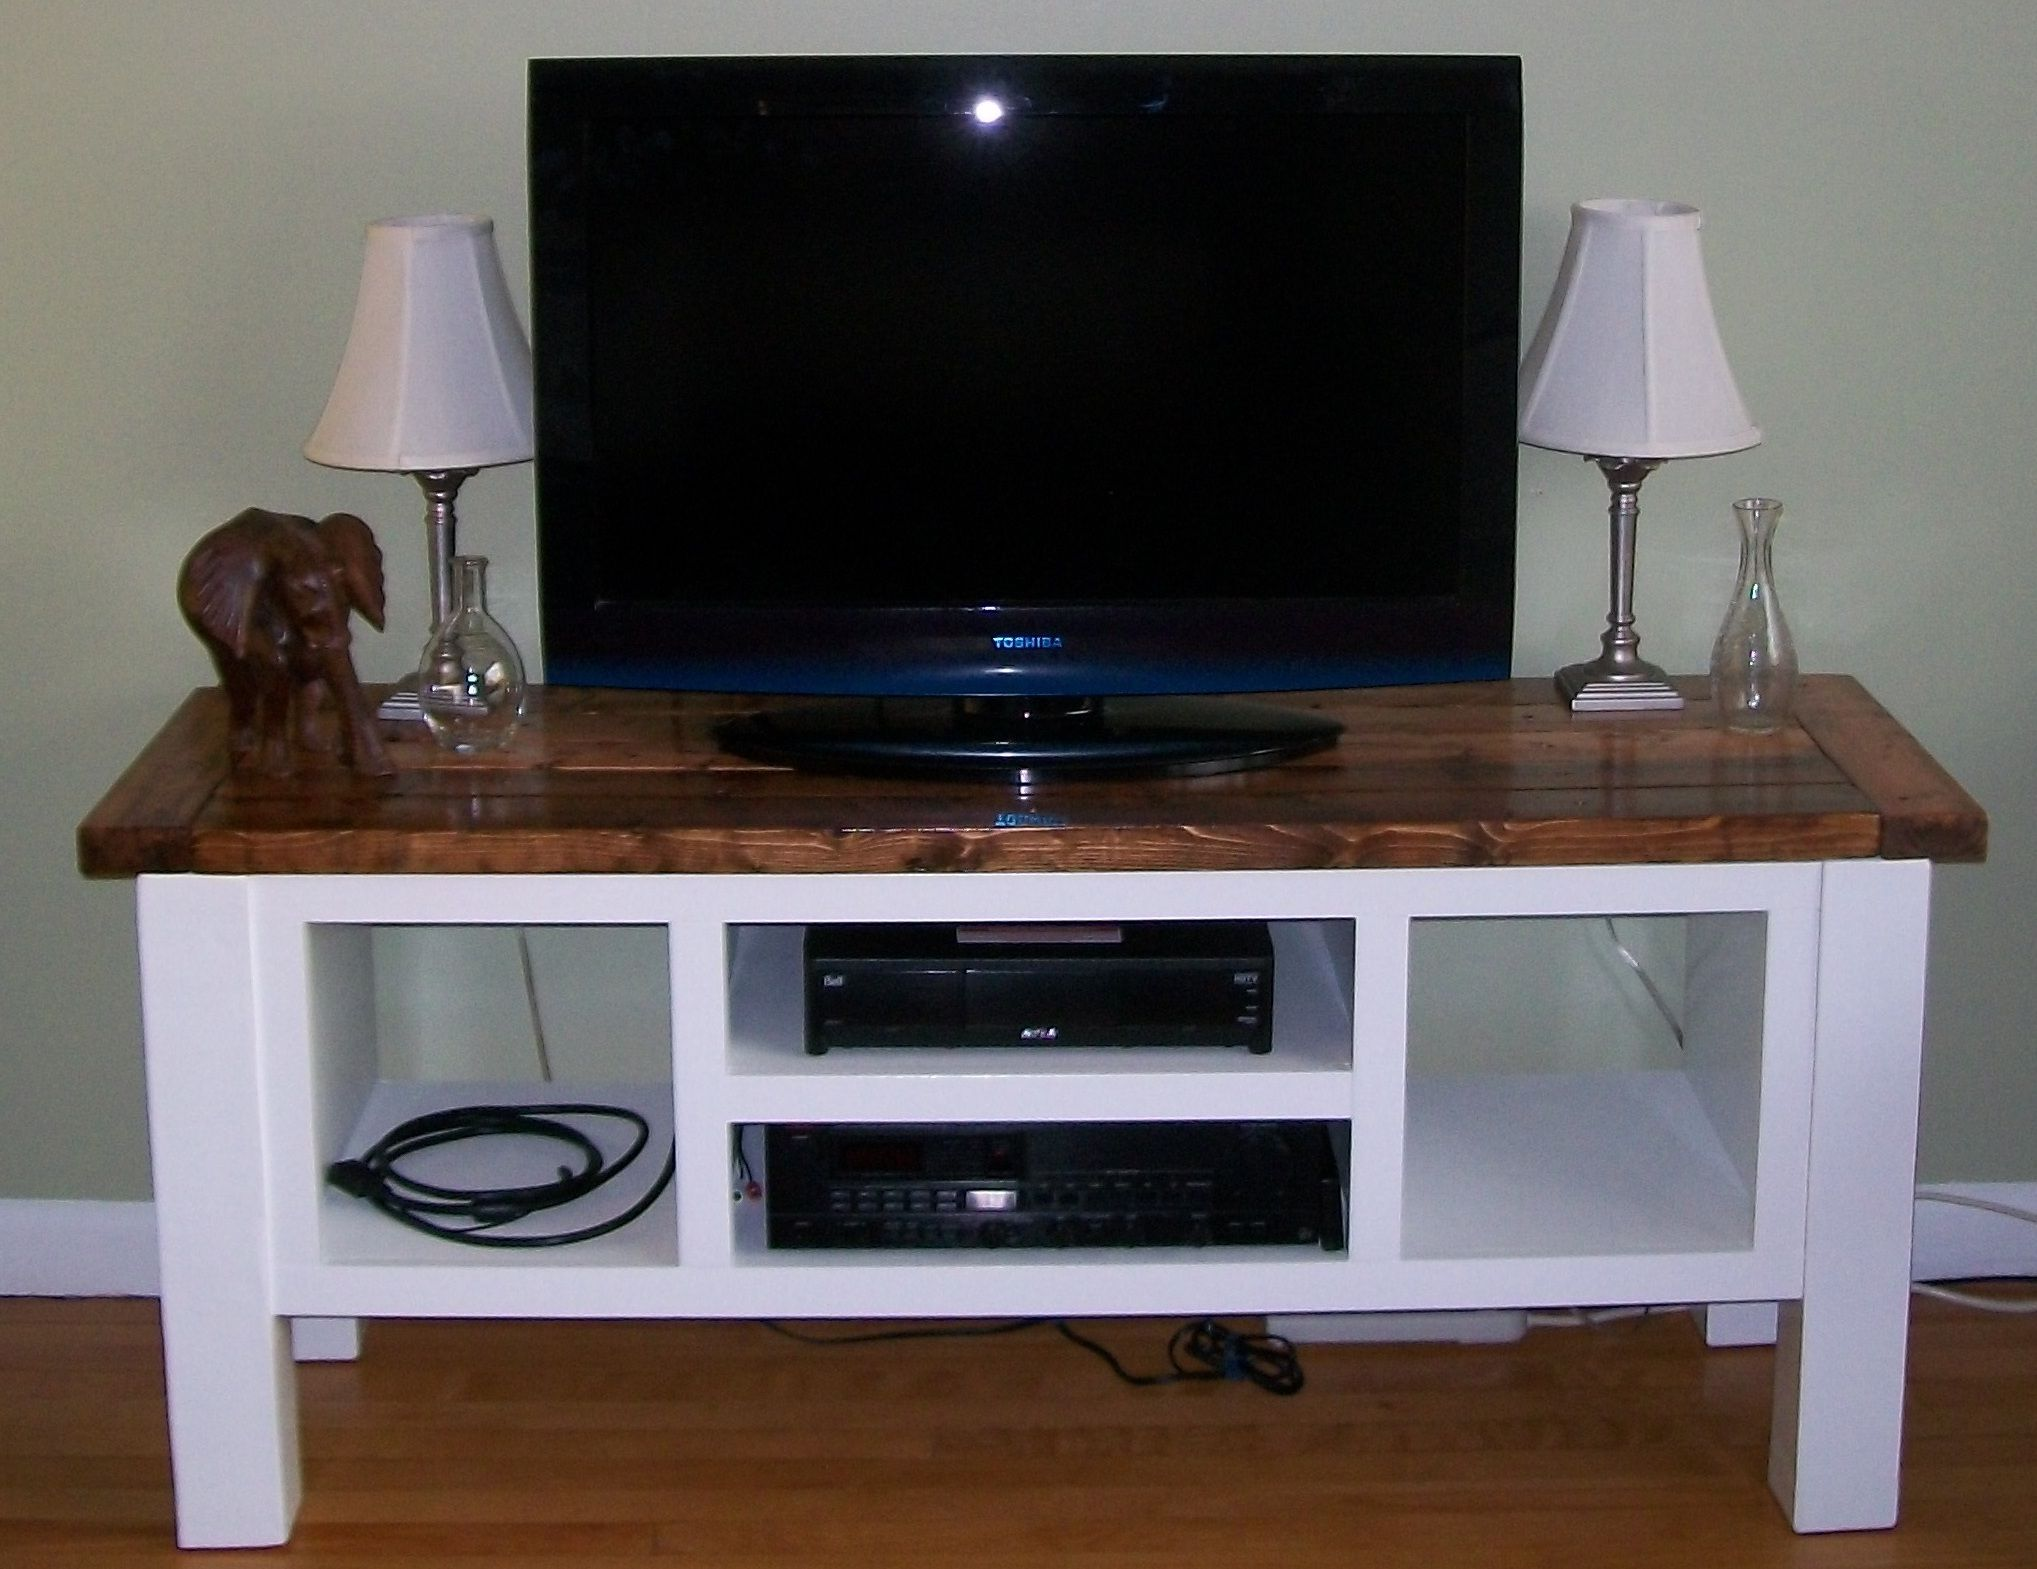 Tryde media console do it yourself home projects from ana white tryde media console diy projects solutioingenieria Image collections